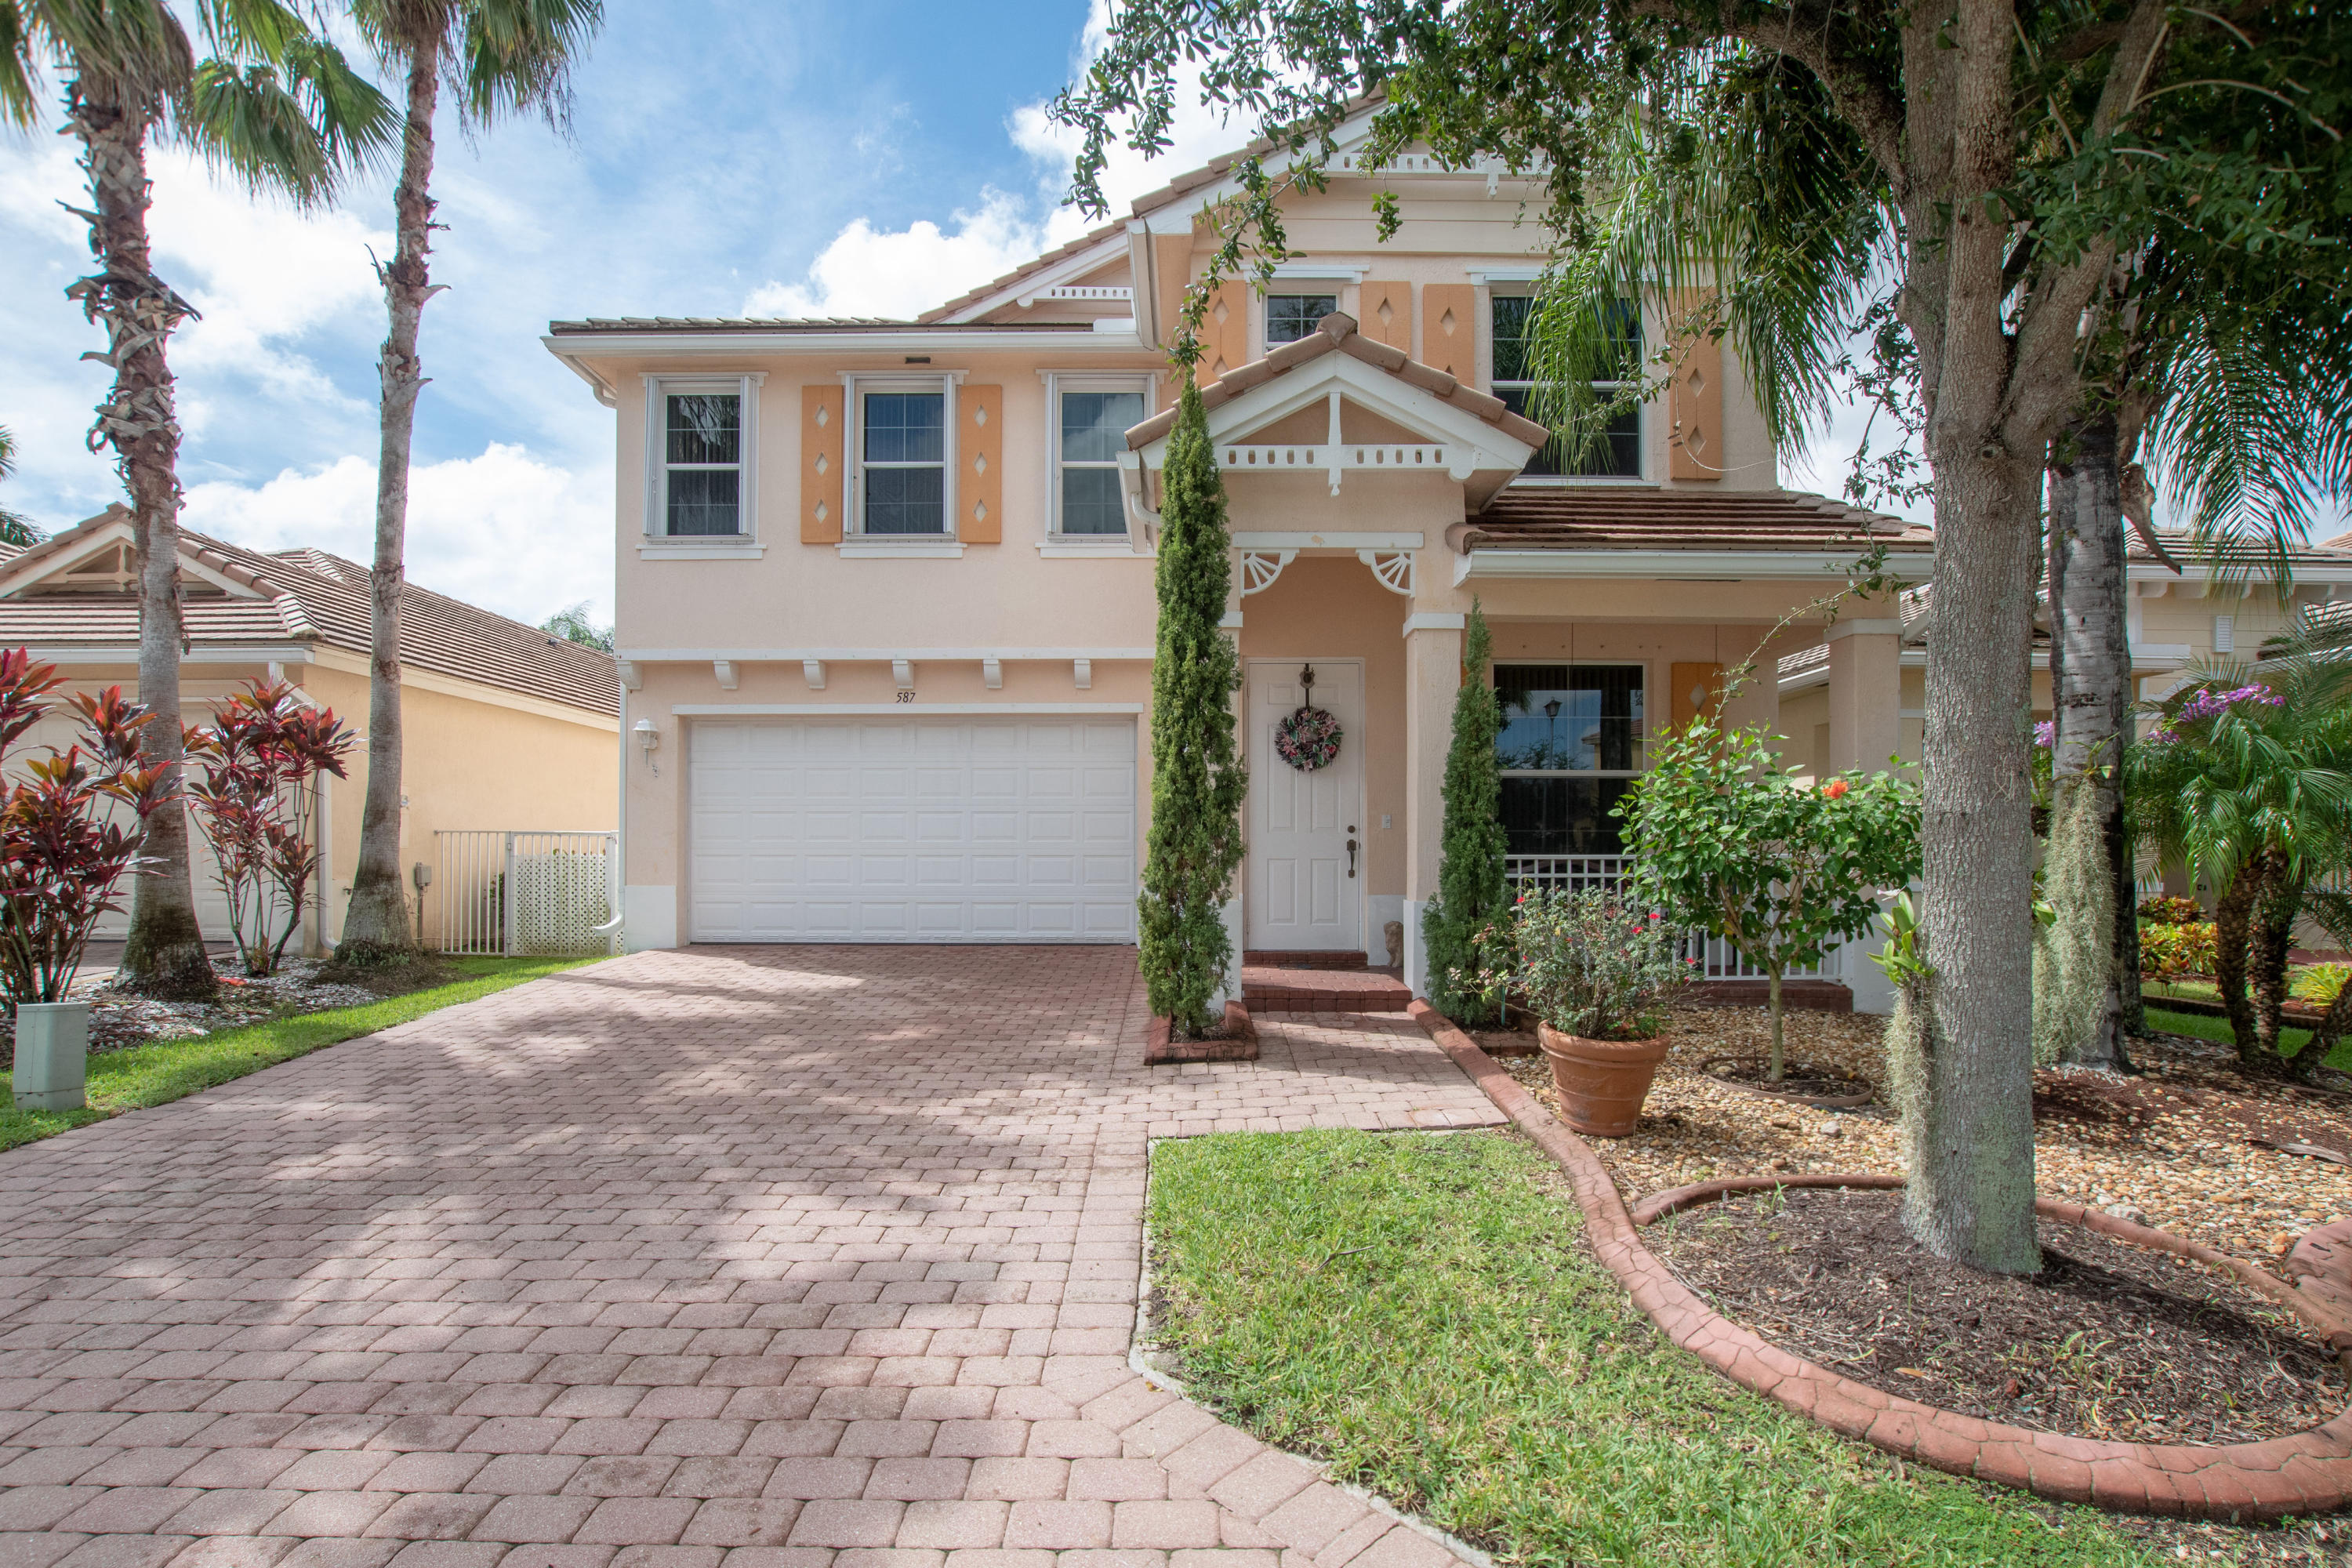 587 Belle Grove Lane 33411 - One of Royal Palm Beach Homes for Sale